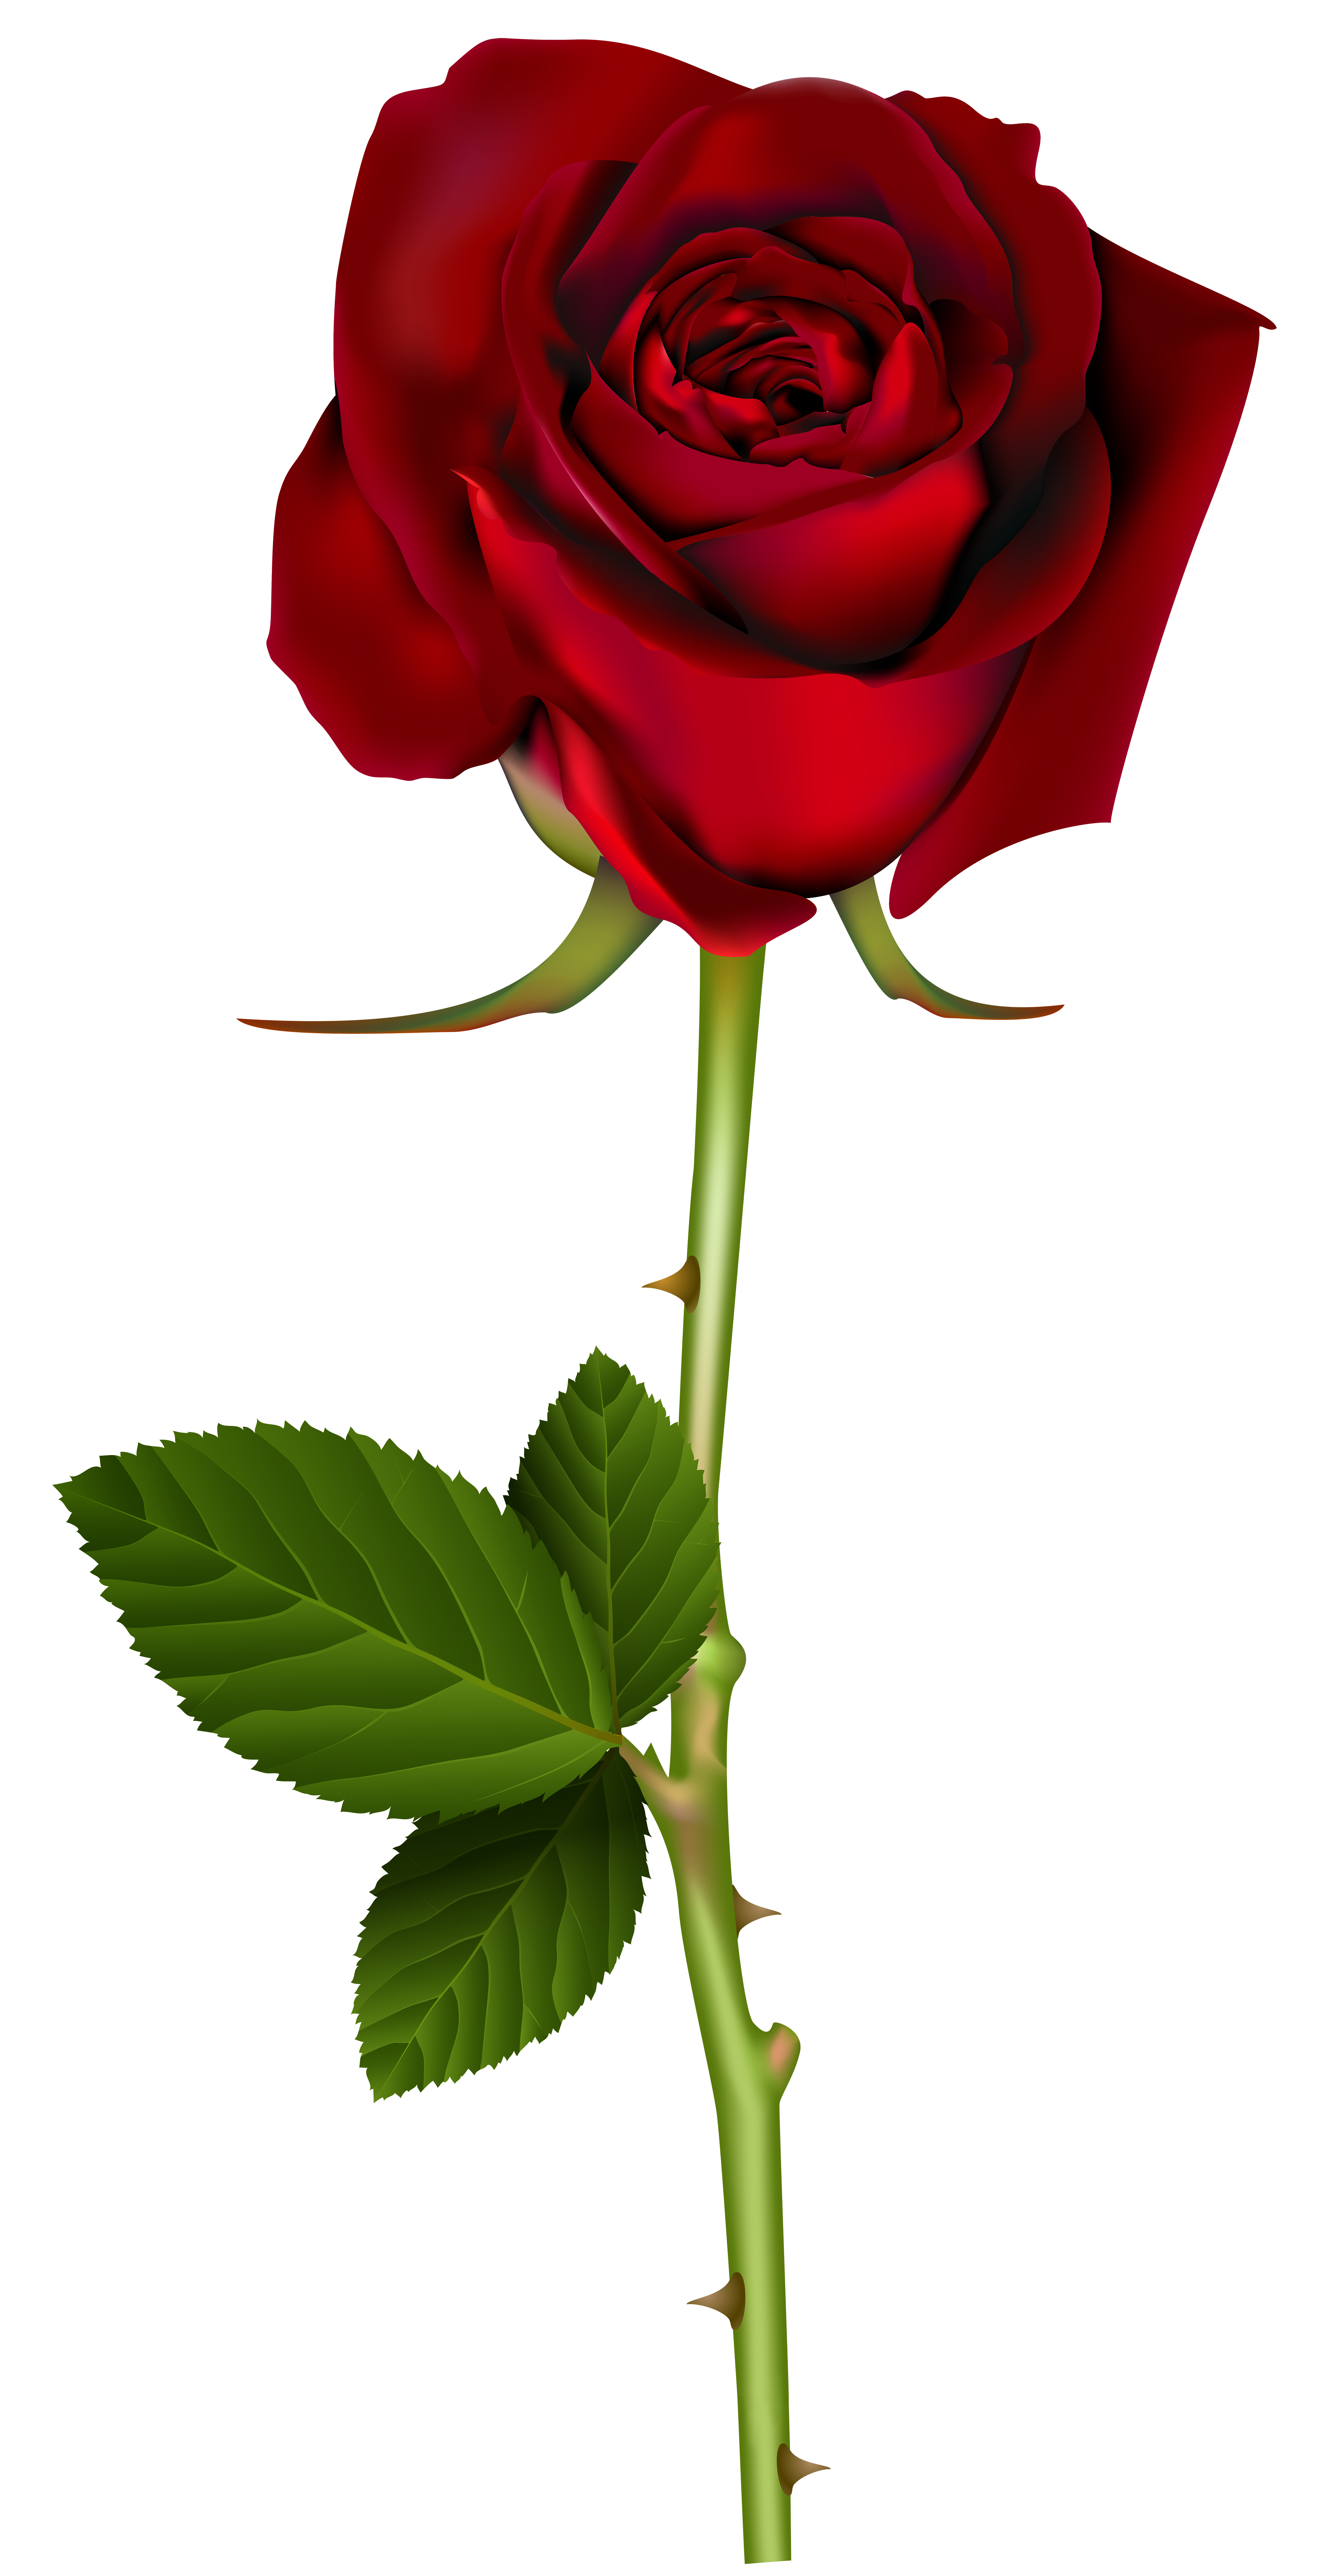 Red Rose PNG Transparent Image.